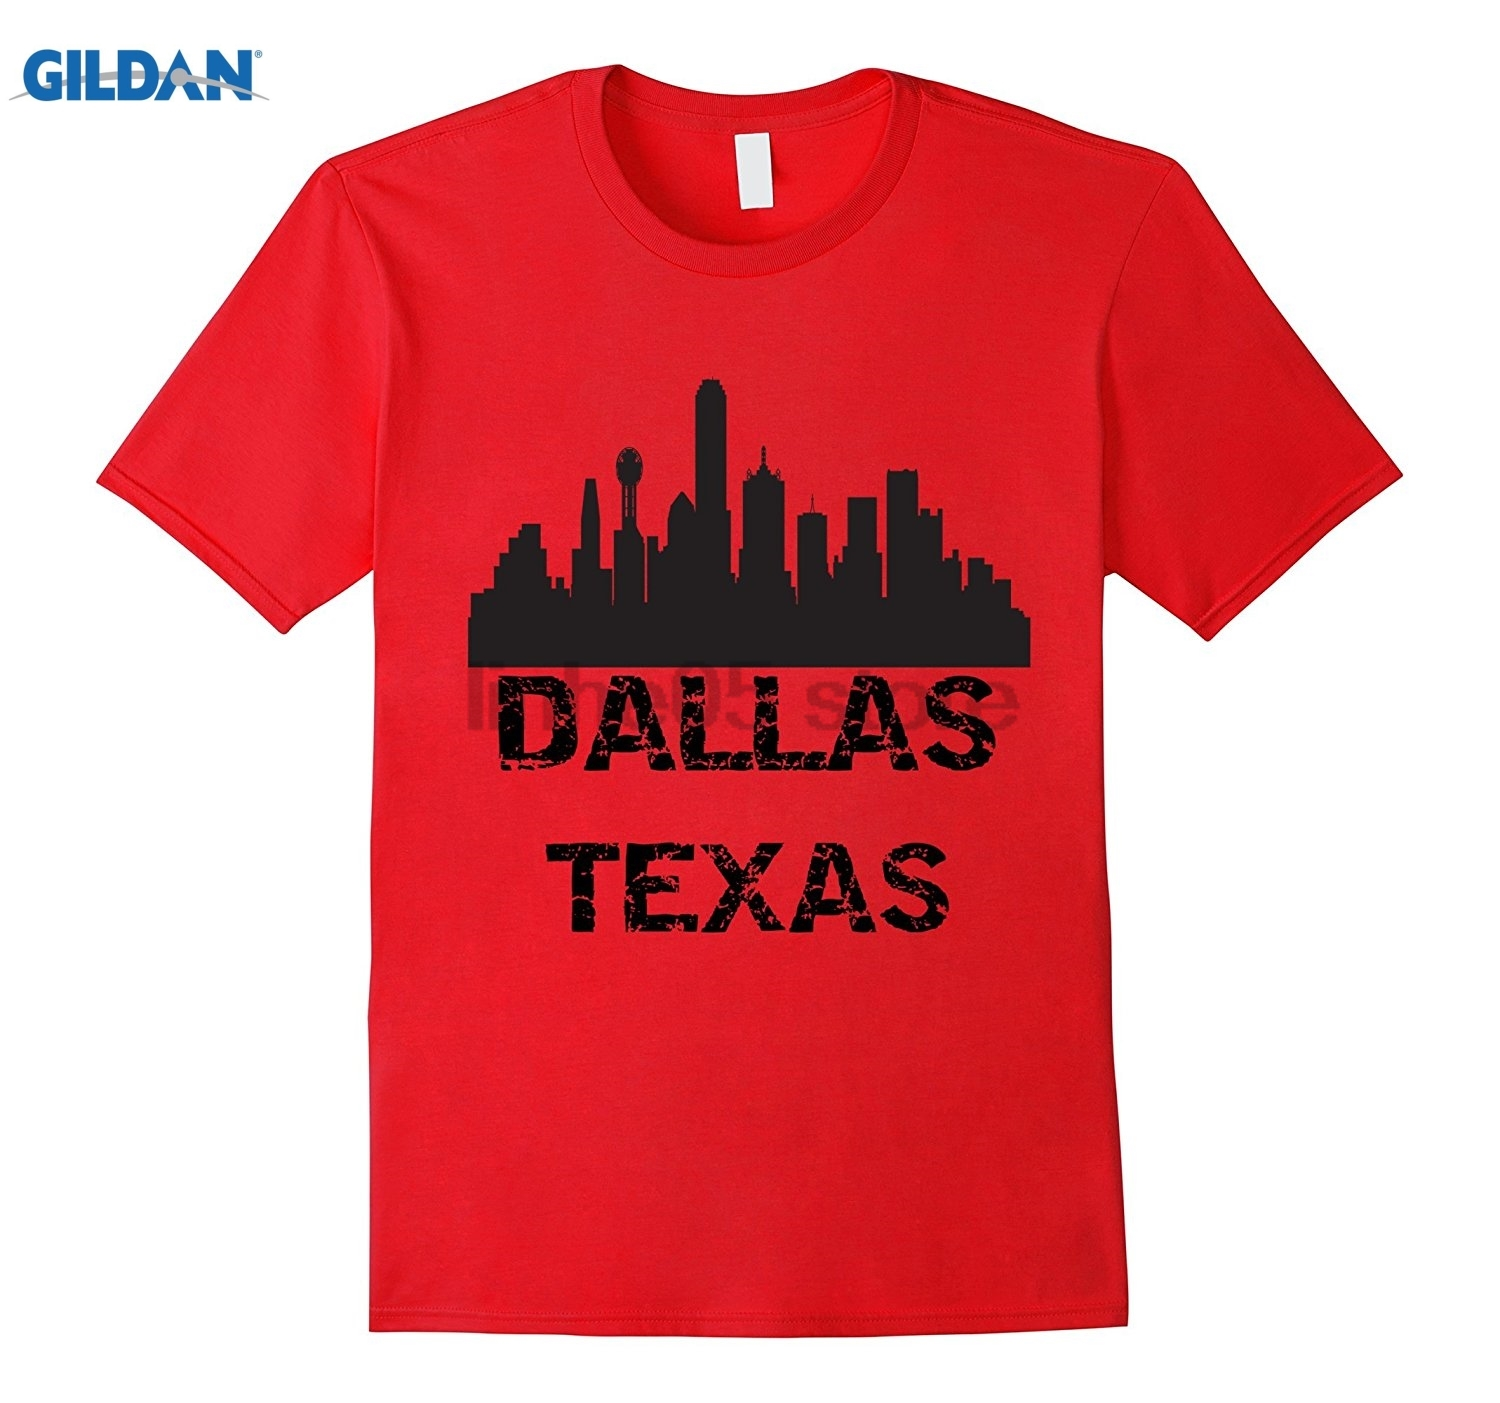 GILDAN Dallas Texas USA United States America City T-shirt Womens T-shirt ...